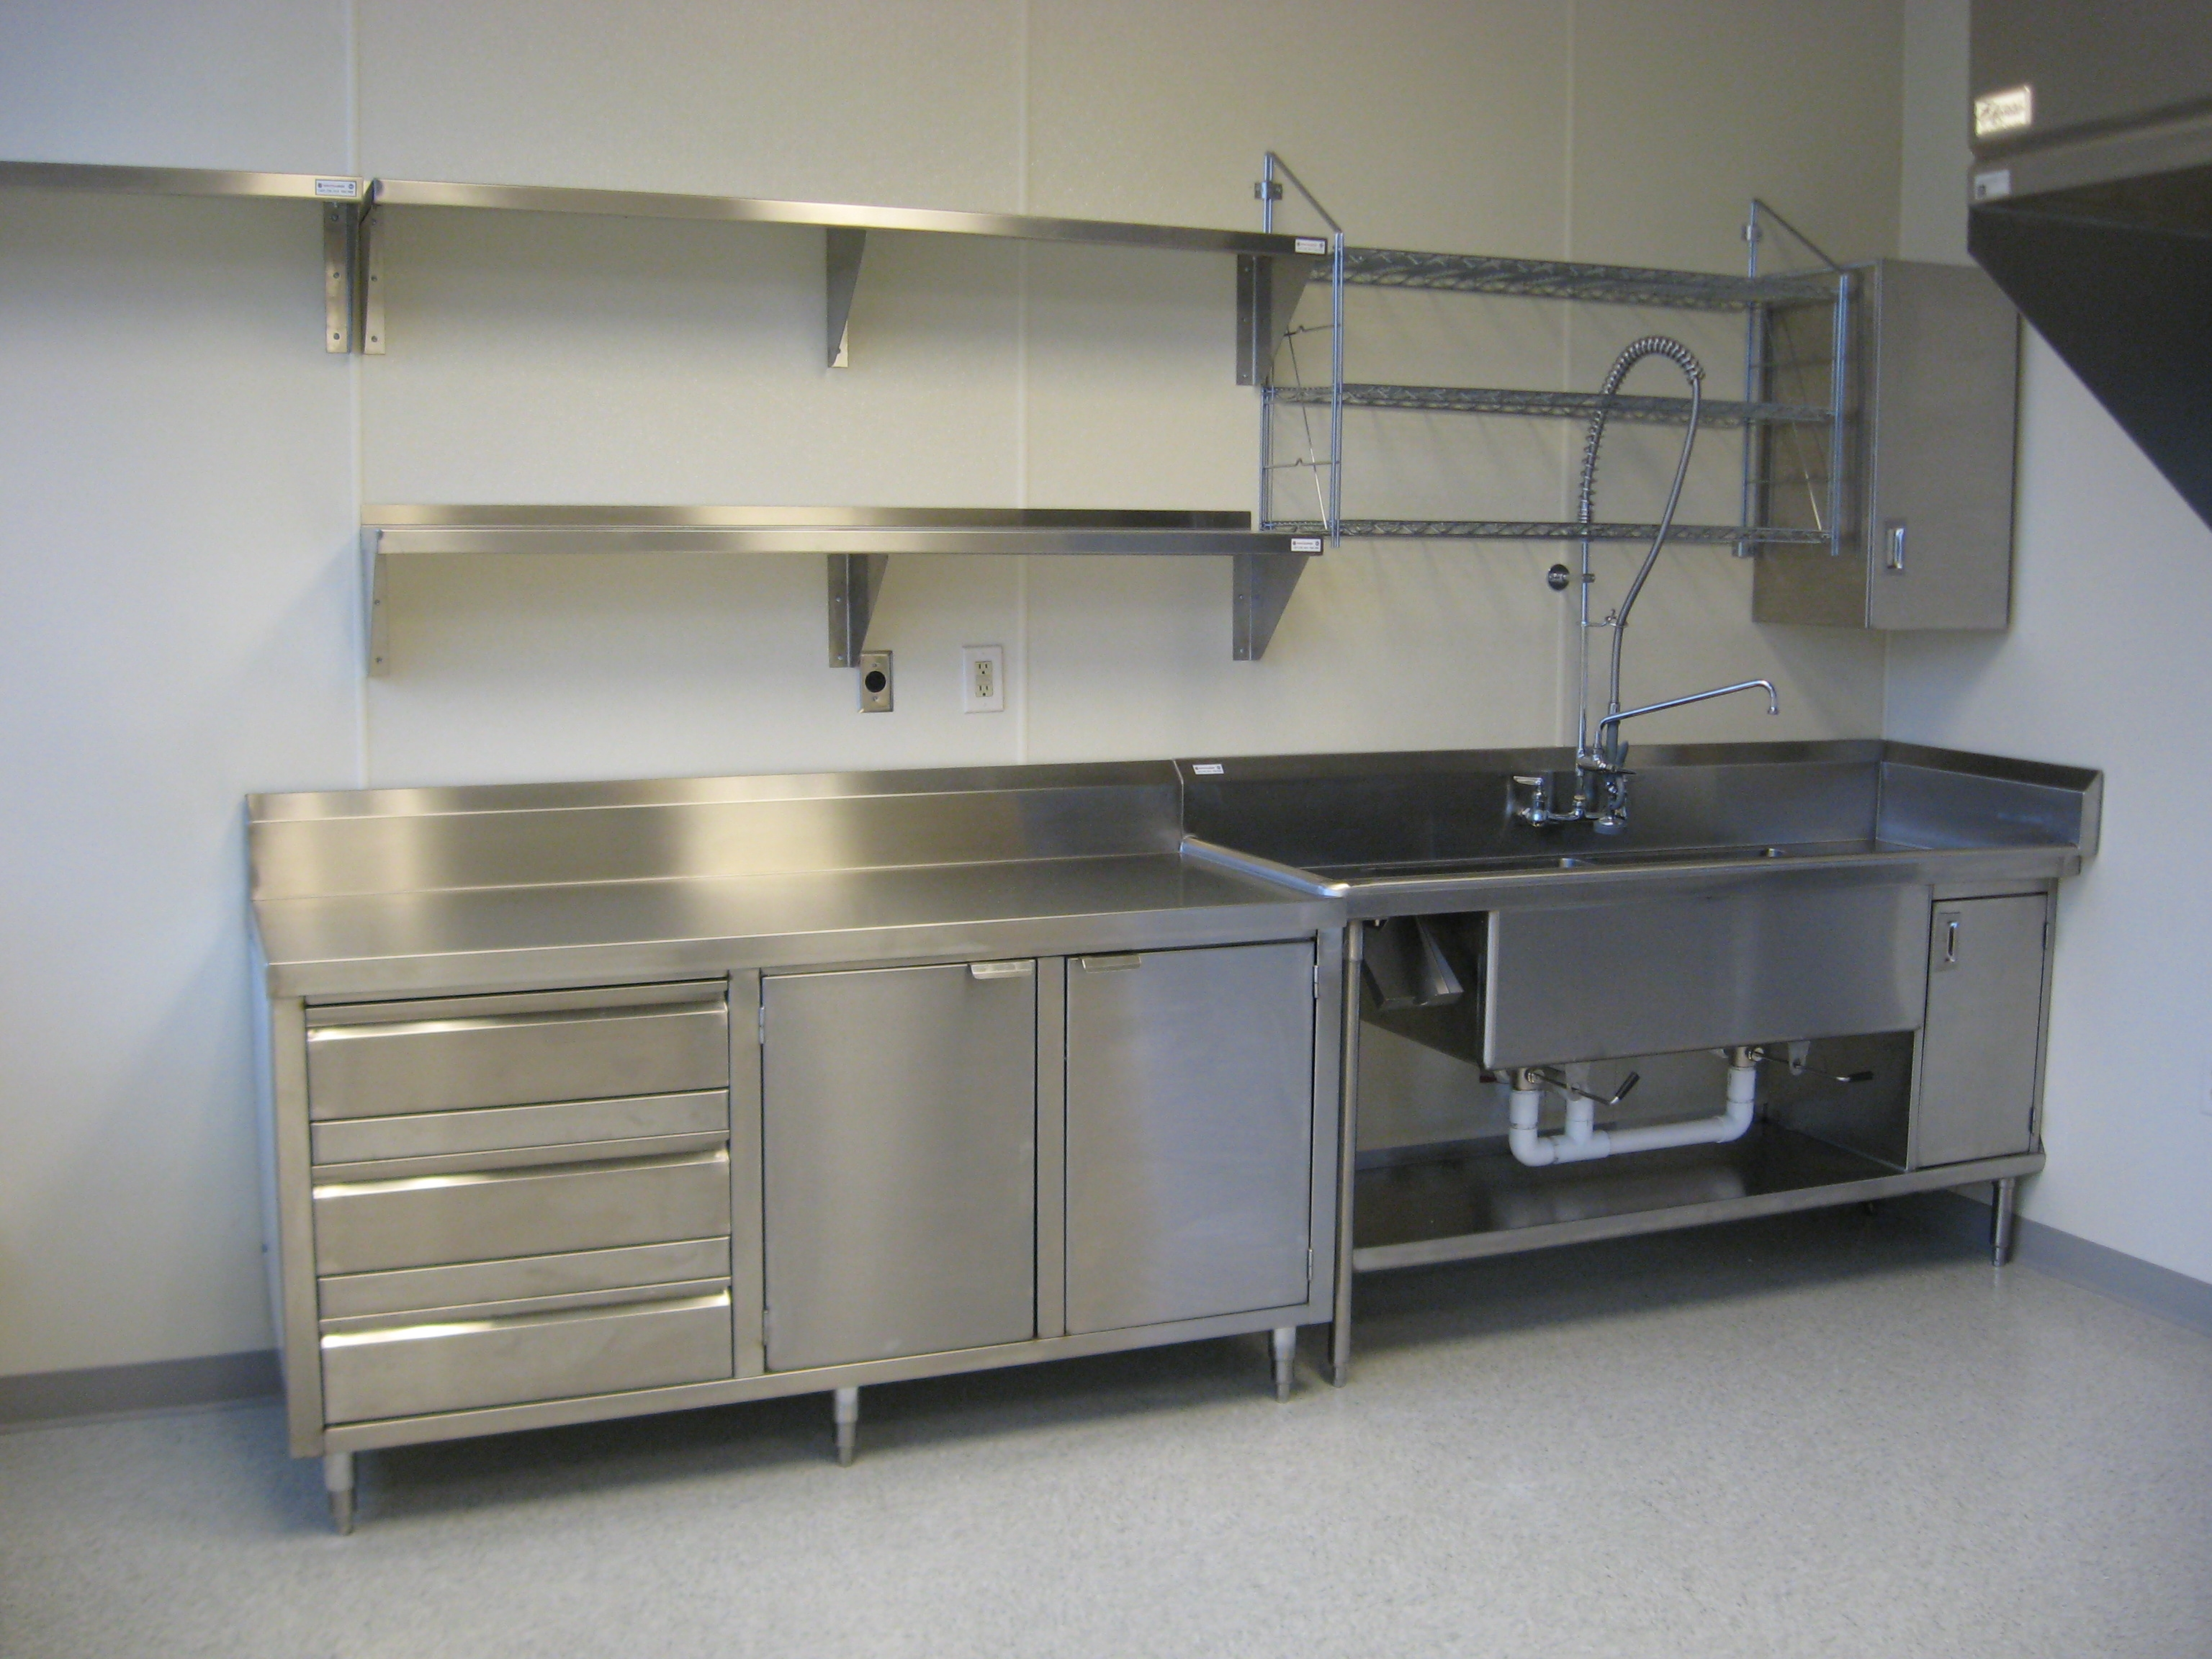 Metal Shelving For Kitchen Cabinets